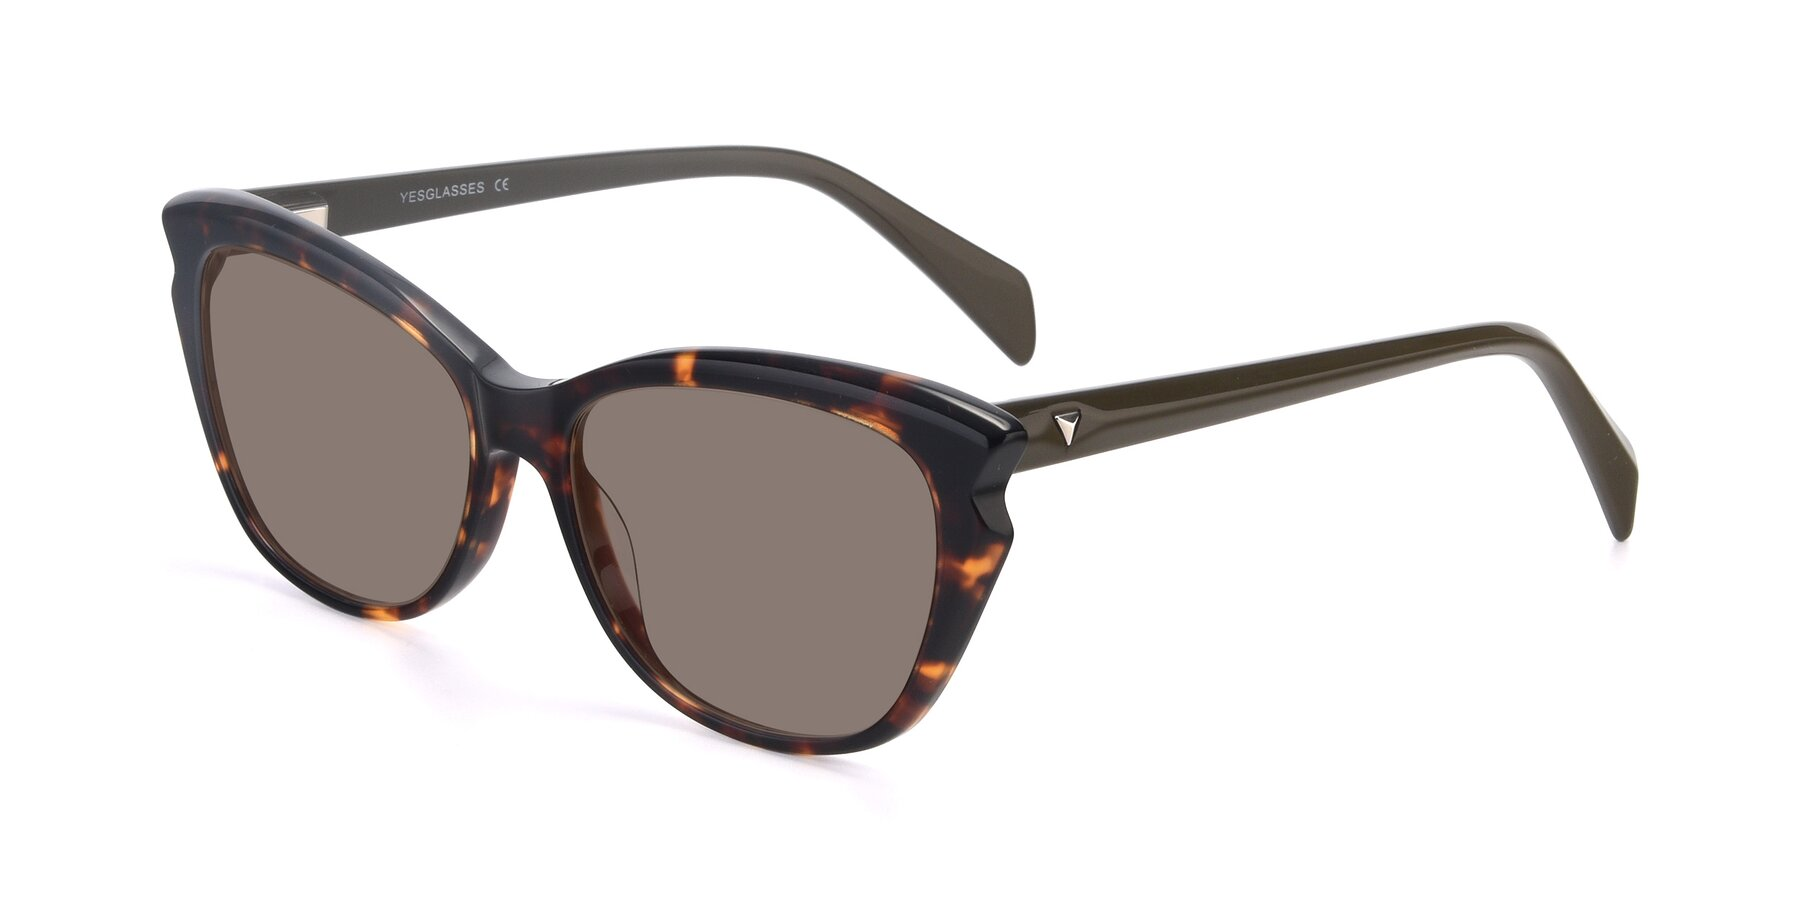 Angle of 17629 in Tortoise with Medium Brown Tinted Lenses